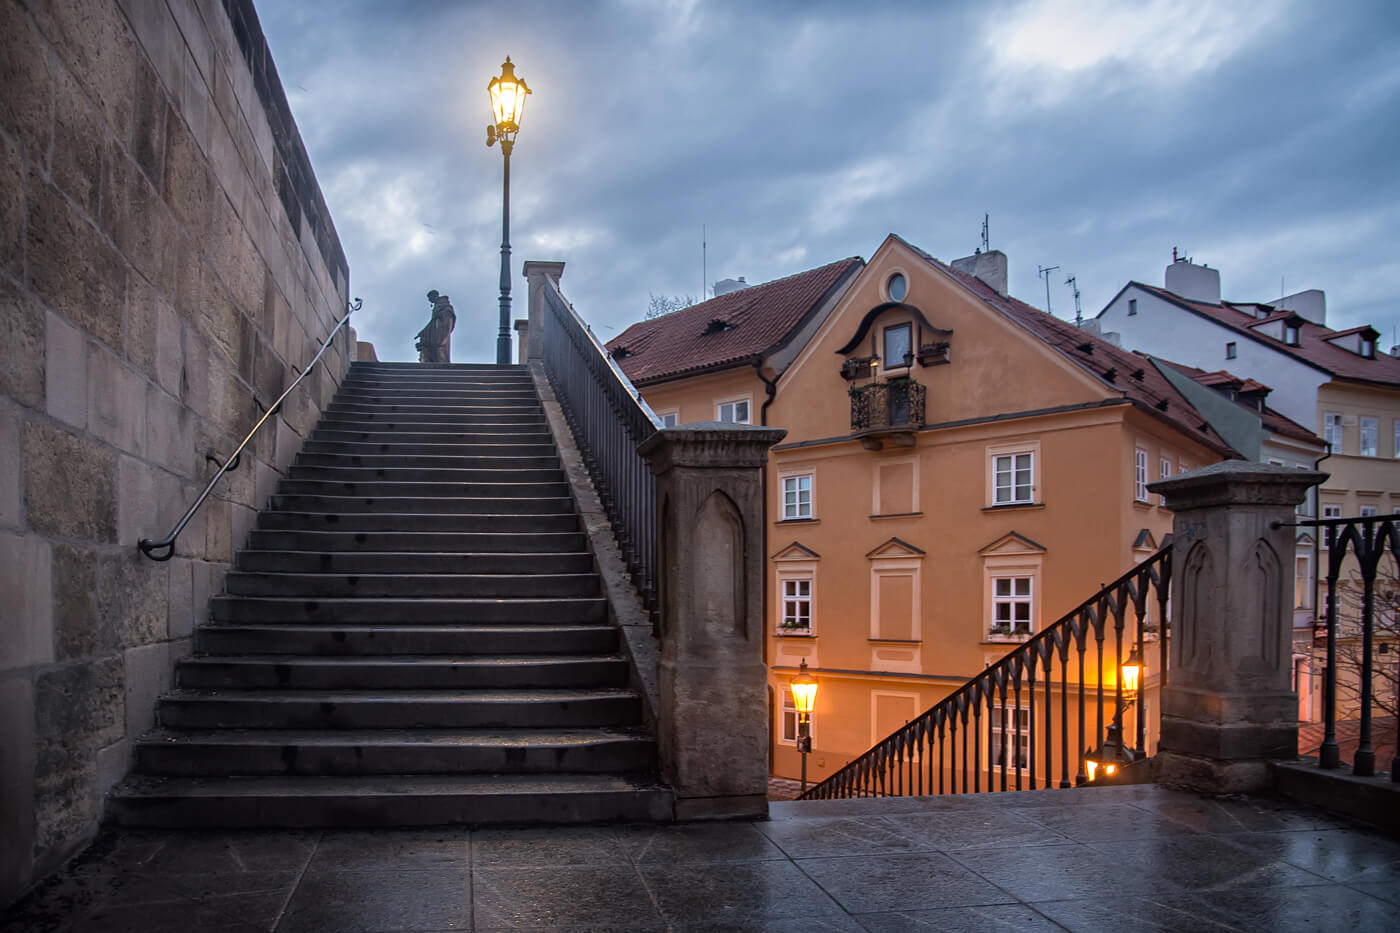 The Charles Bridge at Kampa Stairs, Prague - Photograph by Zdenek Sindelar / CuriousZed